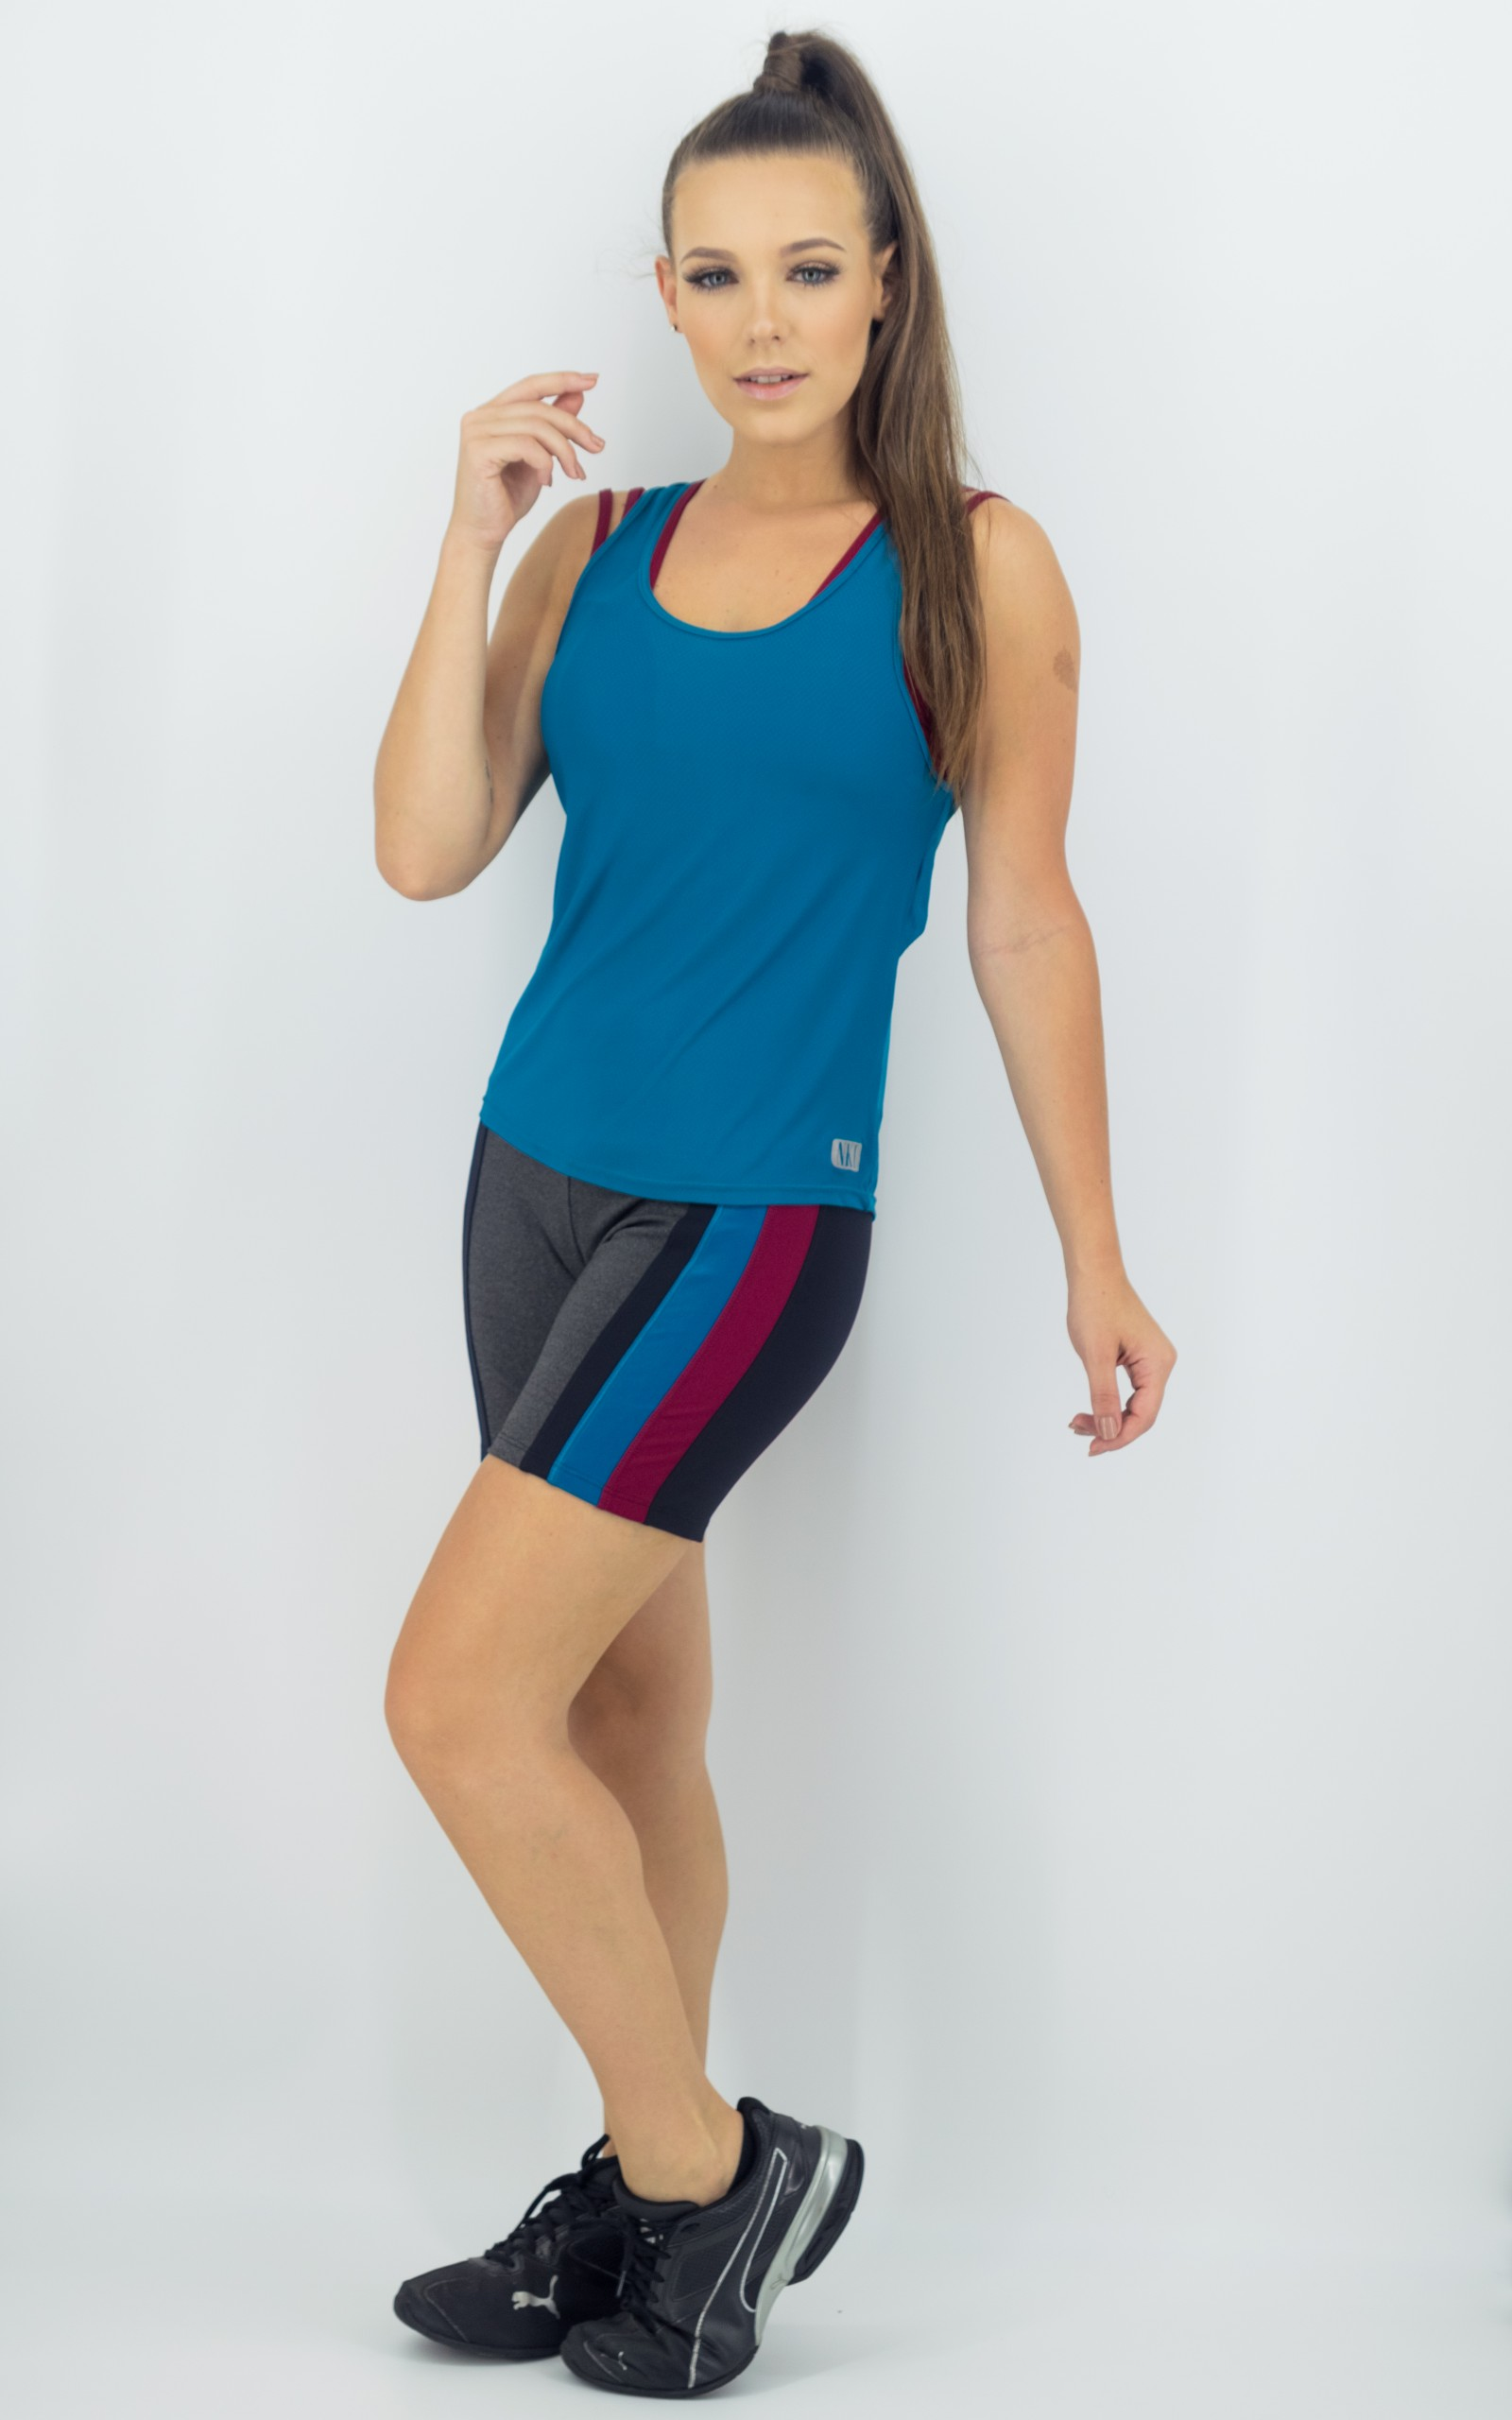 Bermuda Mellowness Petróleo, Coleção Move Your Body - NKT Fitwear Moda Fitness